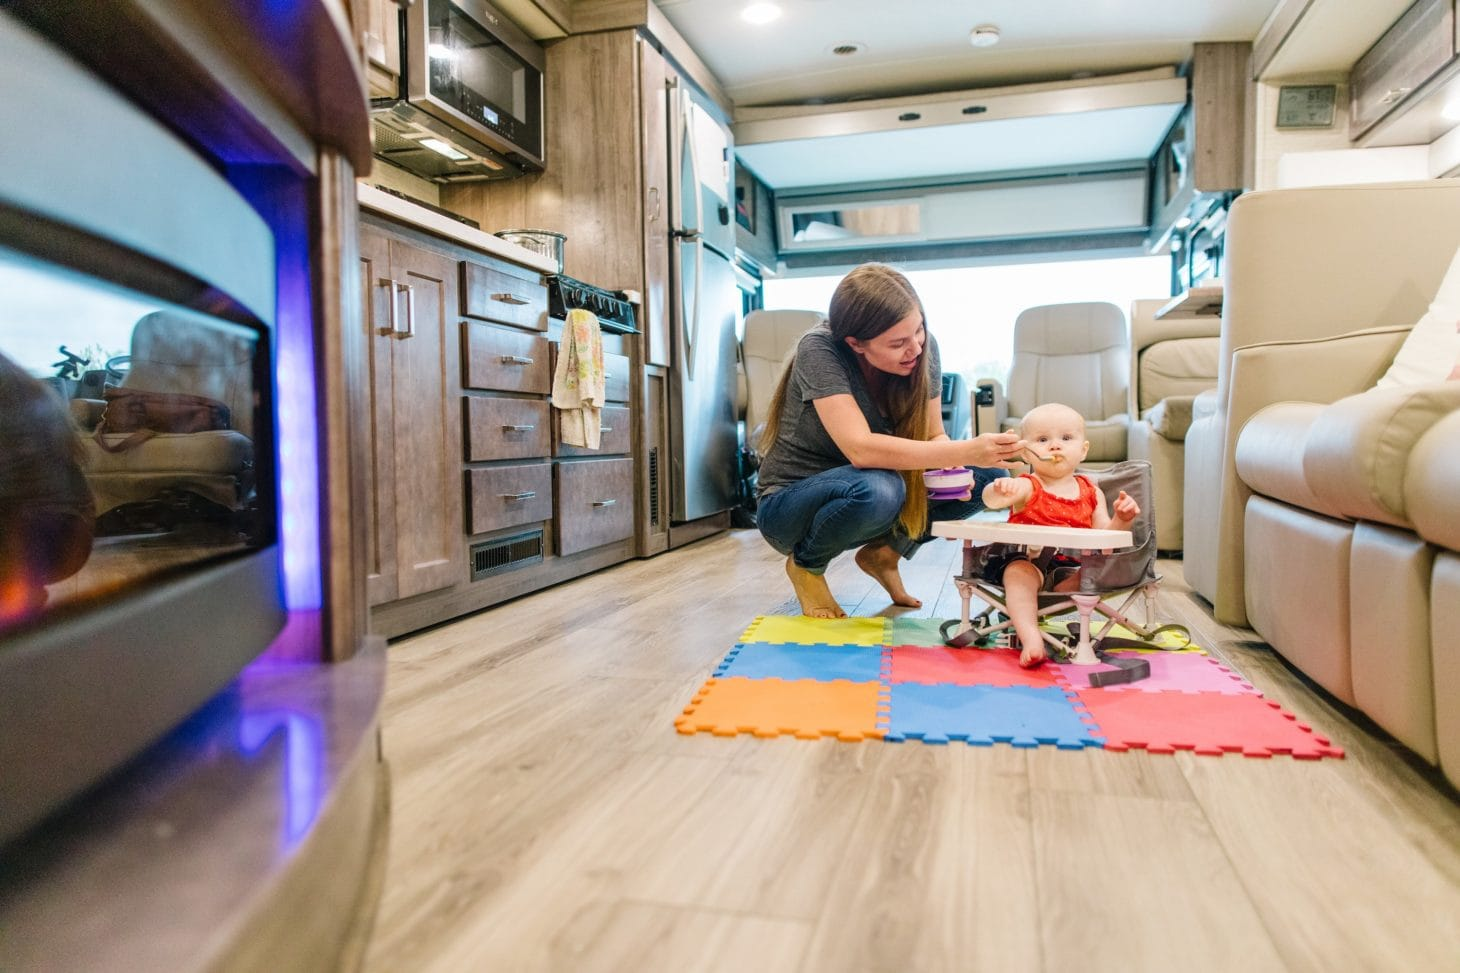 baby being fed on floor of rv